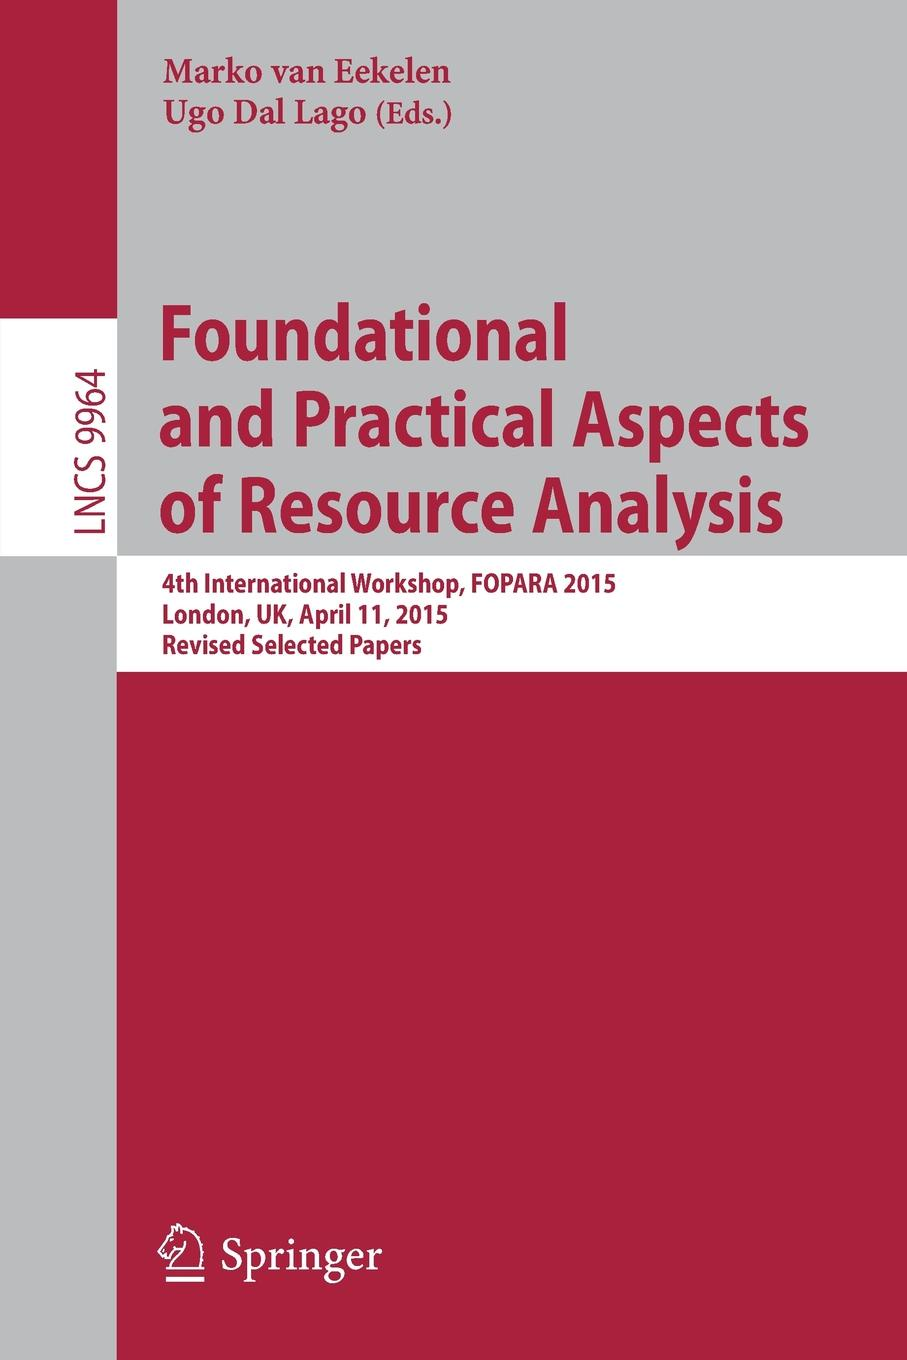 Foundational and Practical Aspects of Resource Analysis. 4th International Workshop, FOPARA 2015, London, UK, April 11, 2015. Revised Selected Papers